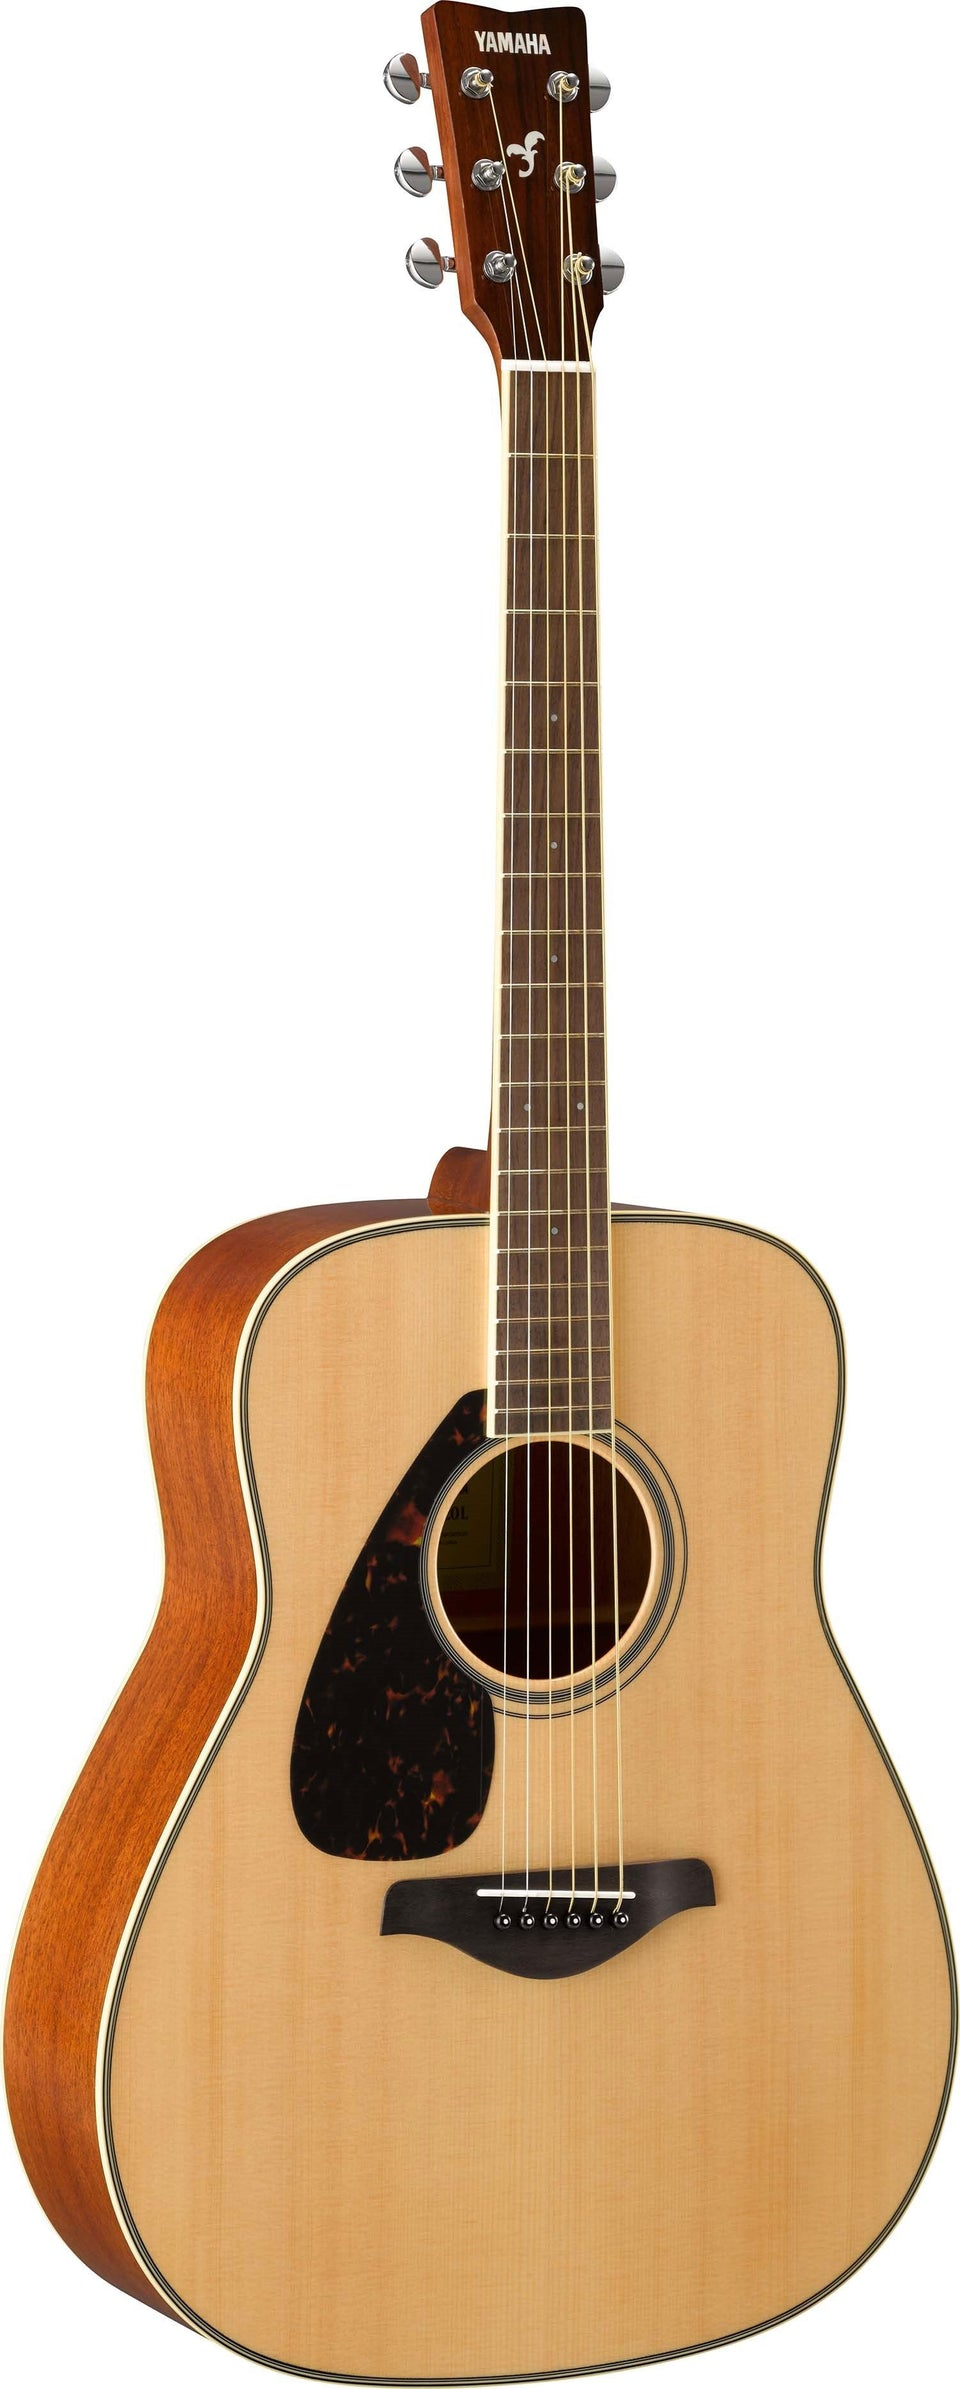 Yamaha FG820L Acoustic Guitar - Left Handed